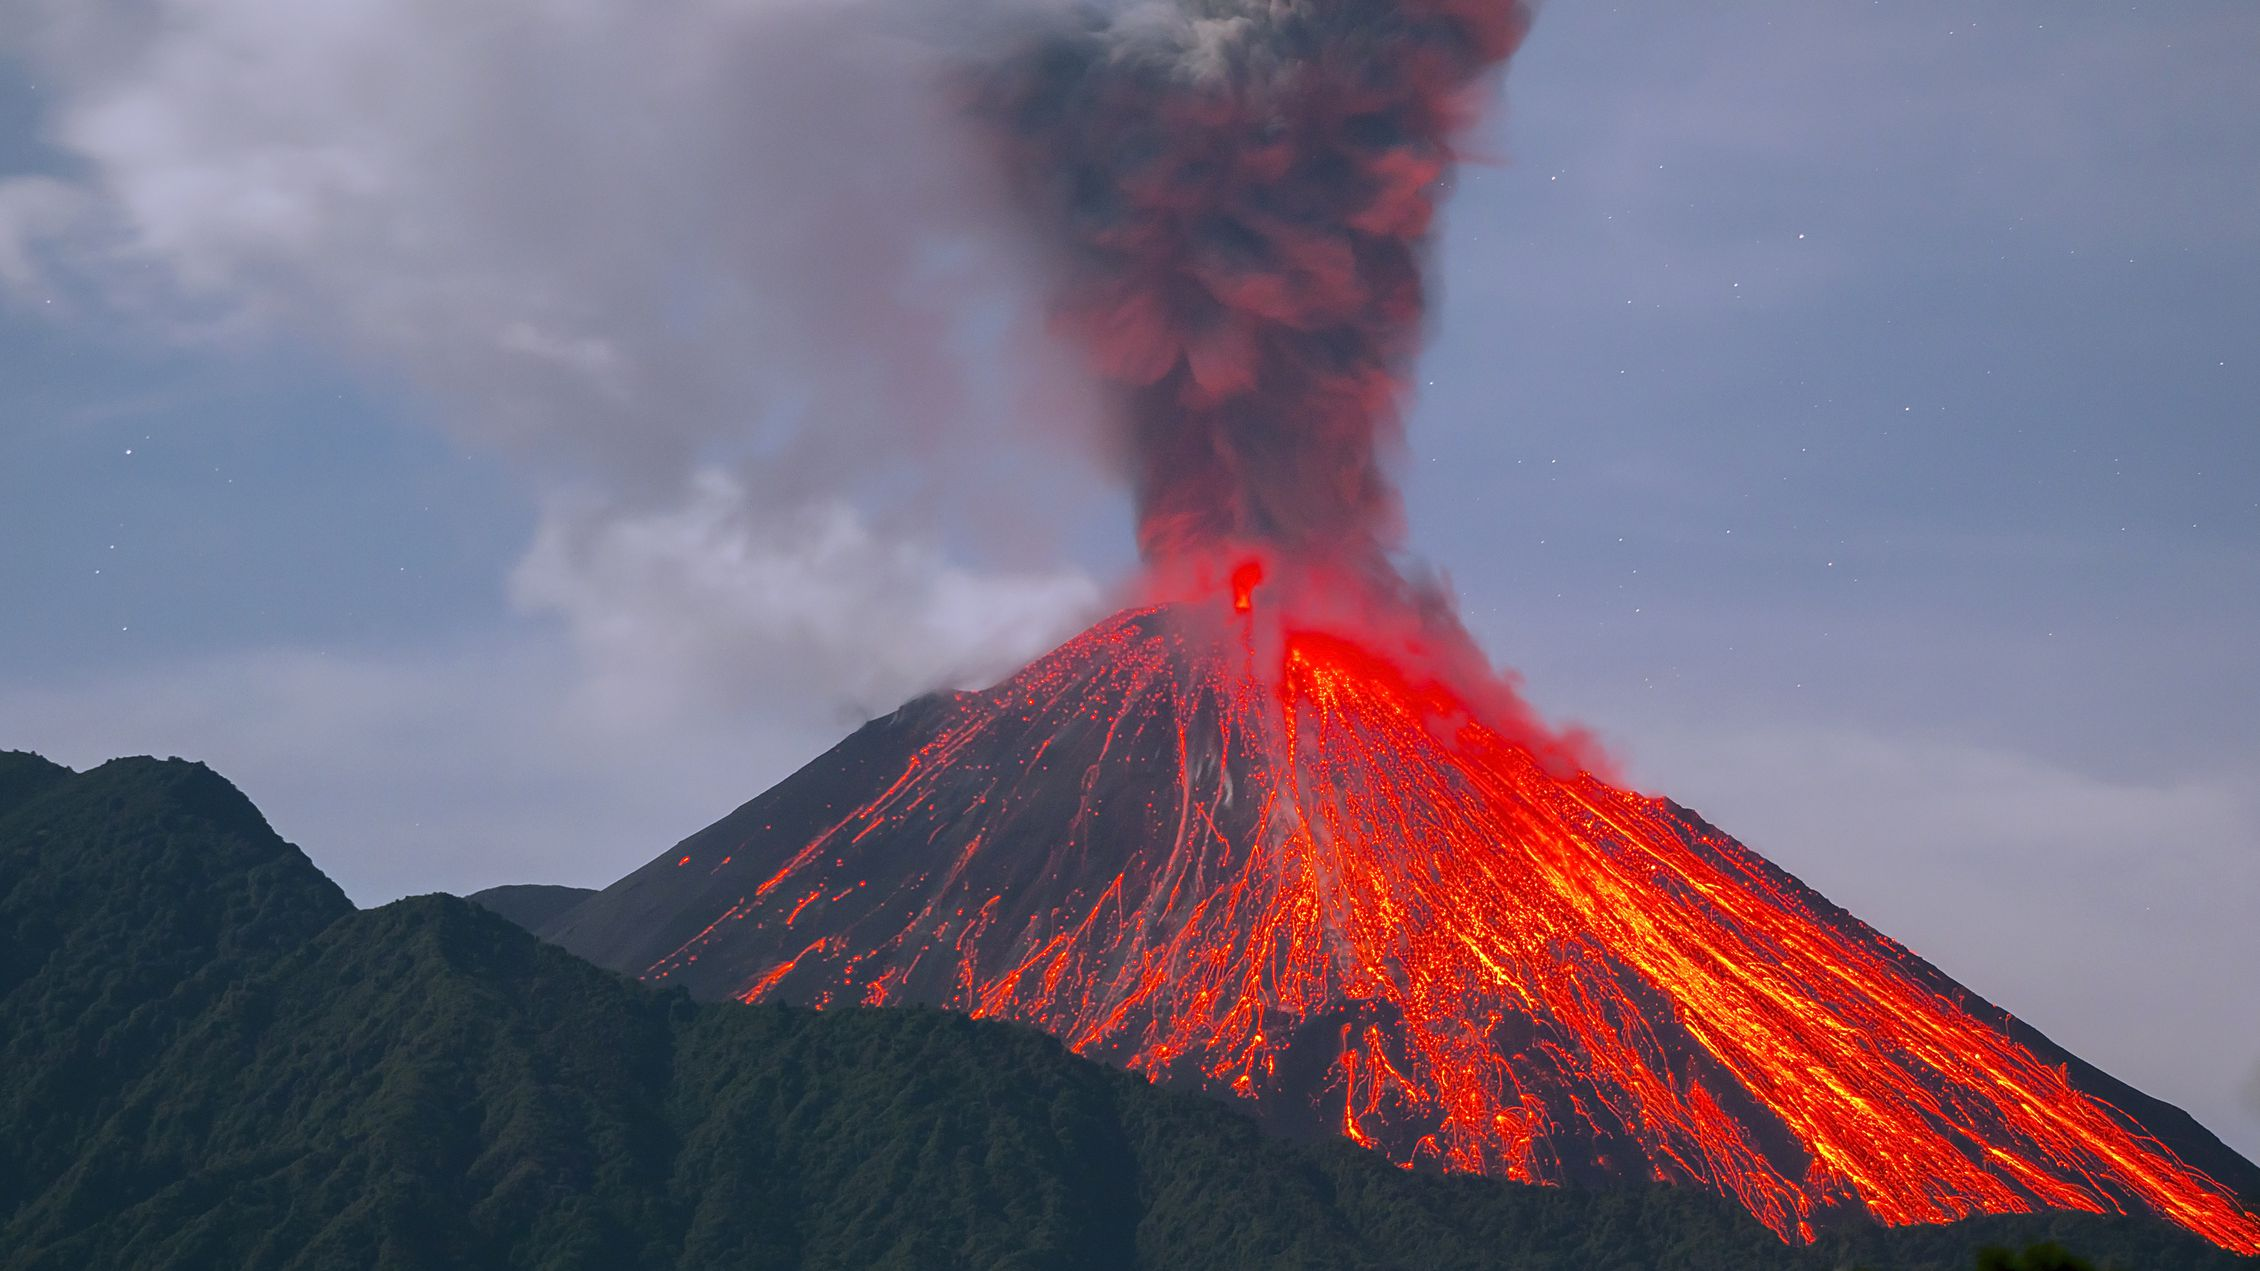 What Happens When a Volcano Erupts?